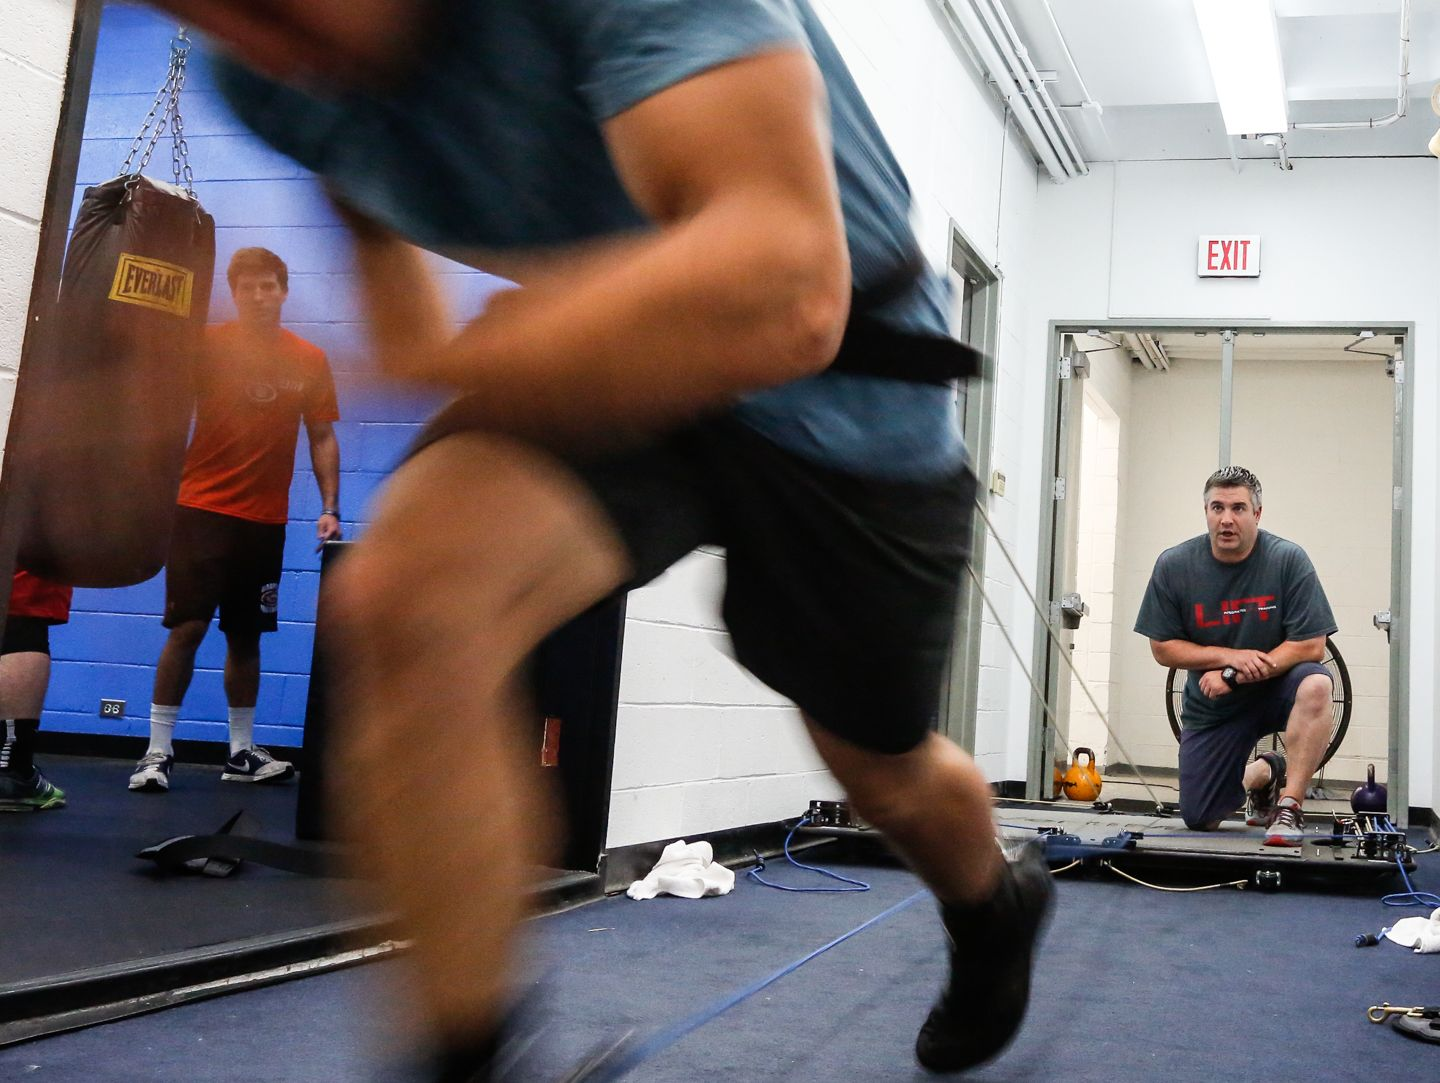 Matt Tauber, right, runs high school and college athletes through a work out at LIFT on the campus of SUNY Purchase in Purchase on Tuesday, June 07, 2016.